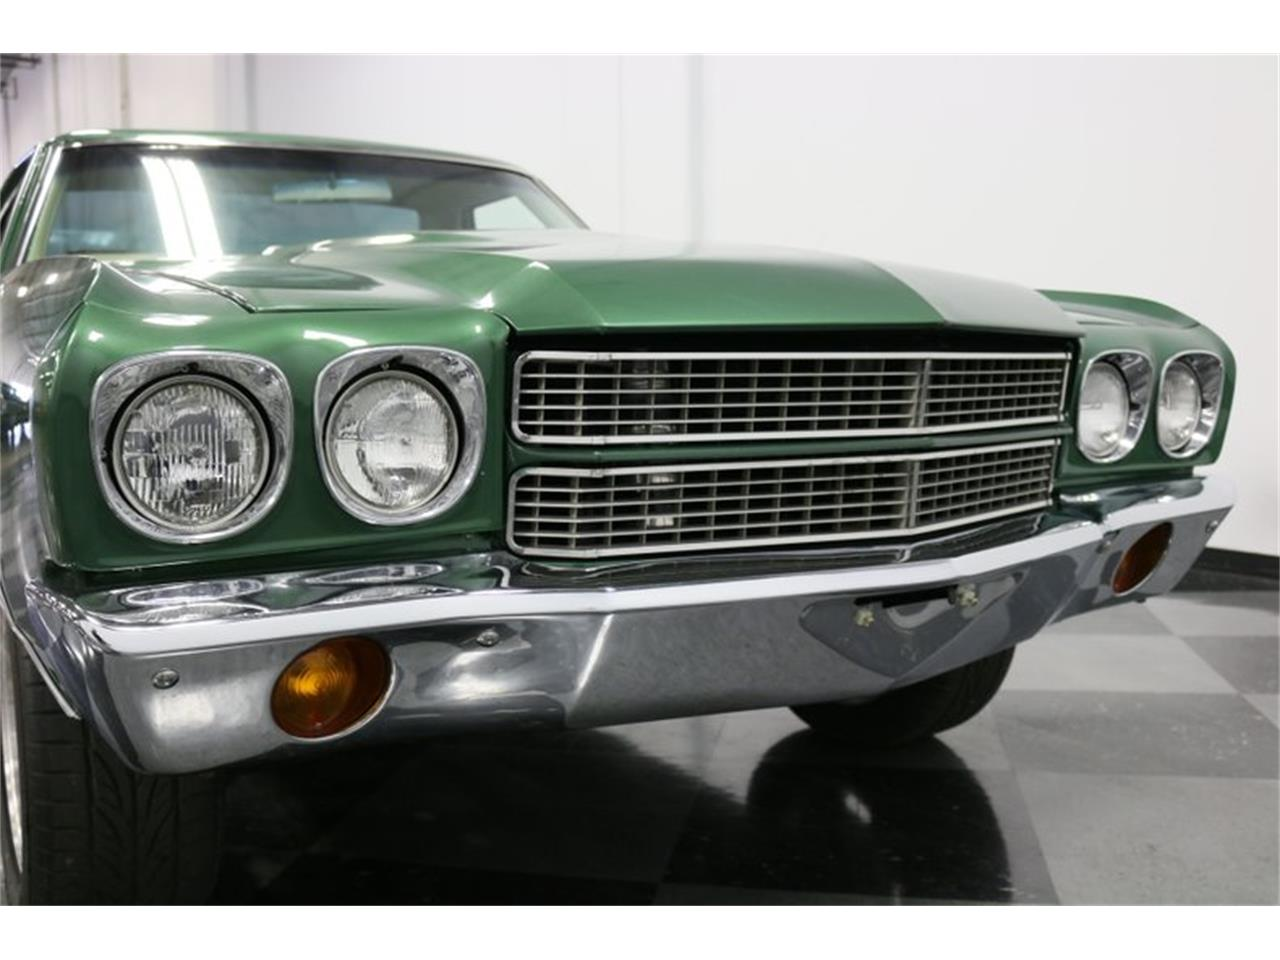 Large Picture of '70 El Camino located in Texas - $24,995.00 - Q9DT